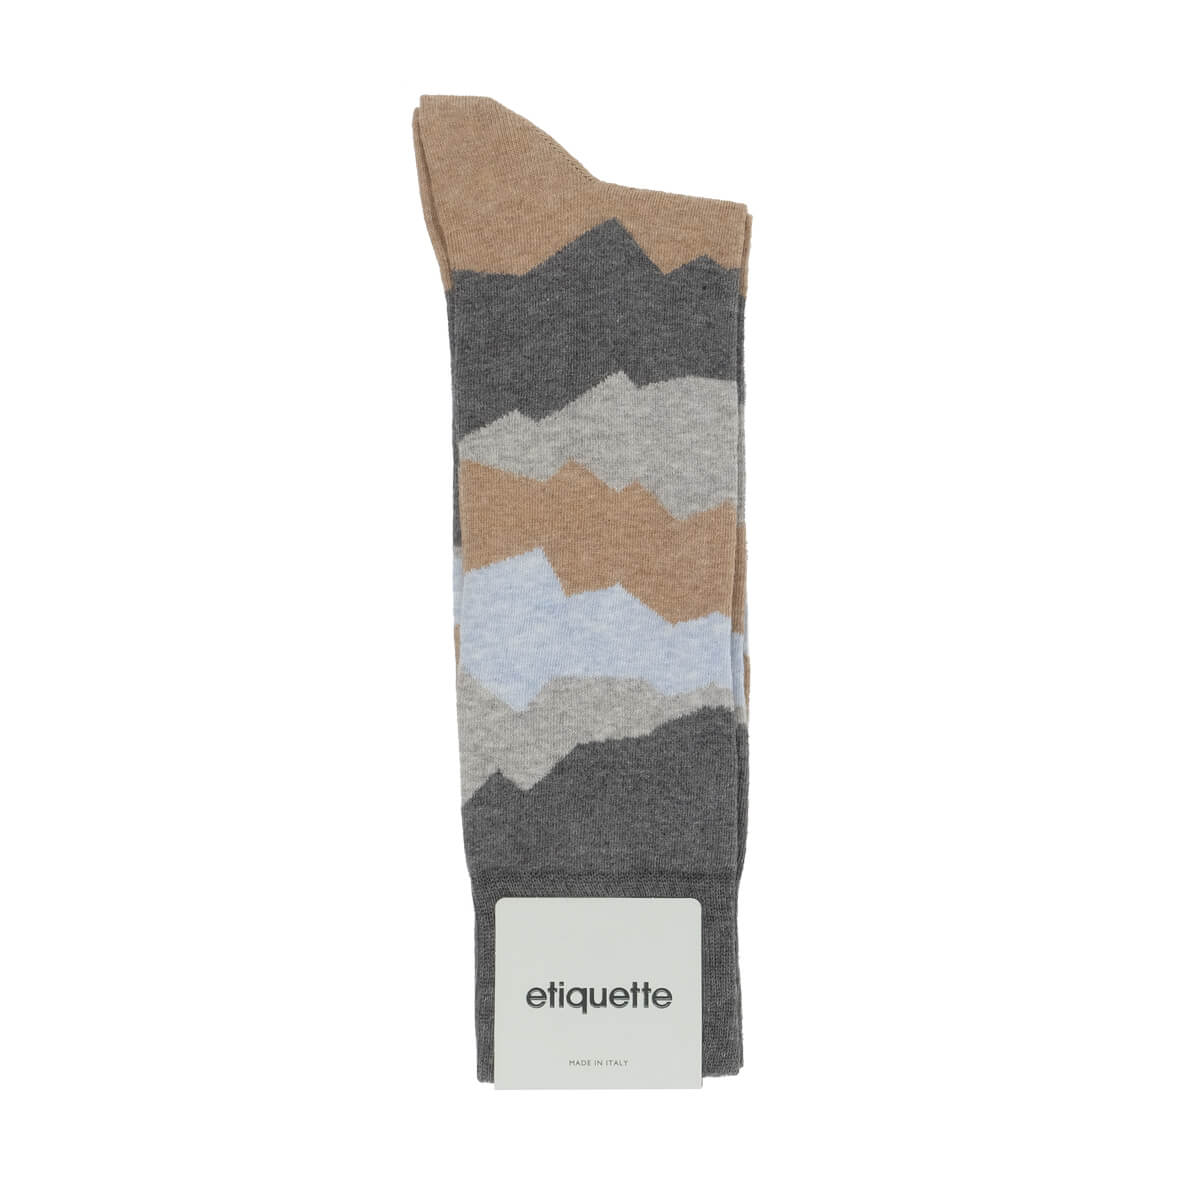 Mens Socks - Seismic - Dark Grey⎪Etiquette Clothiers